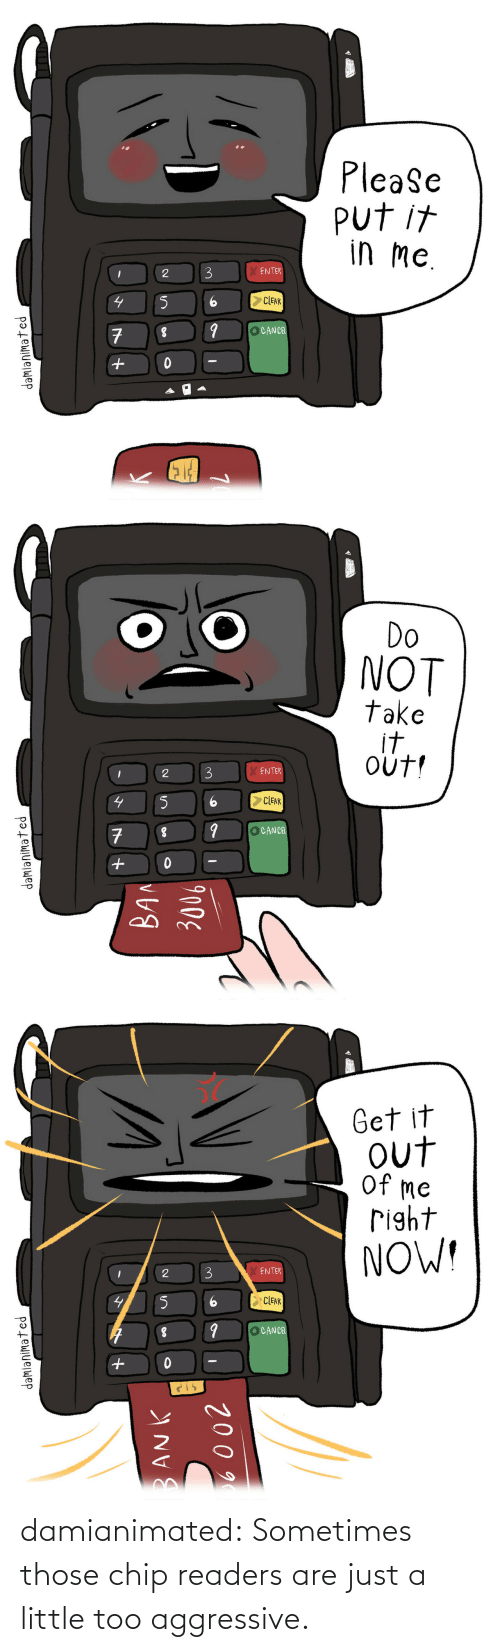 those: damianimated: Sometimes those chip readers are just a little too aggressive.